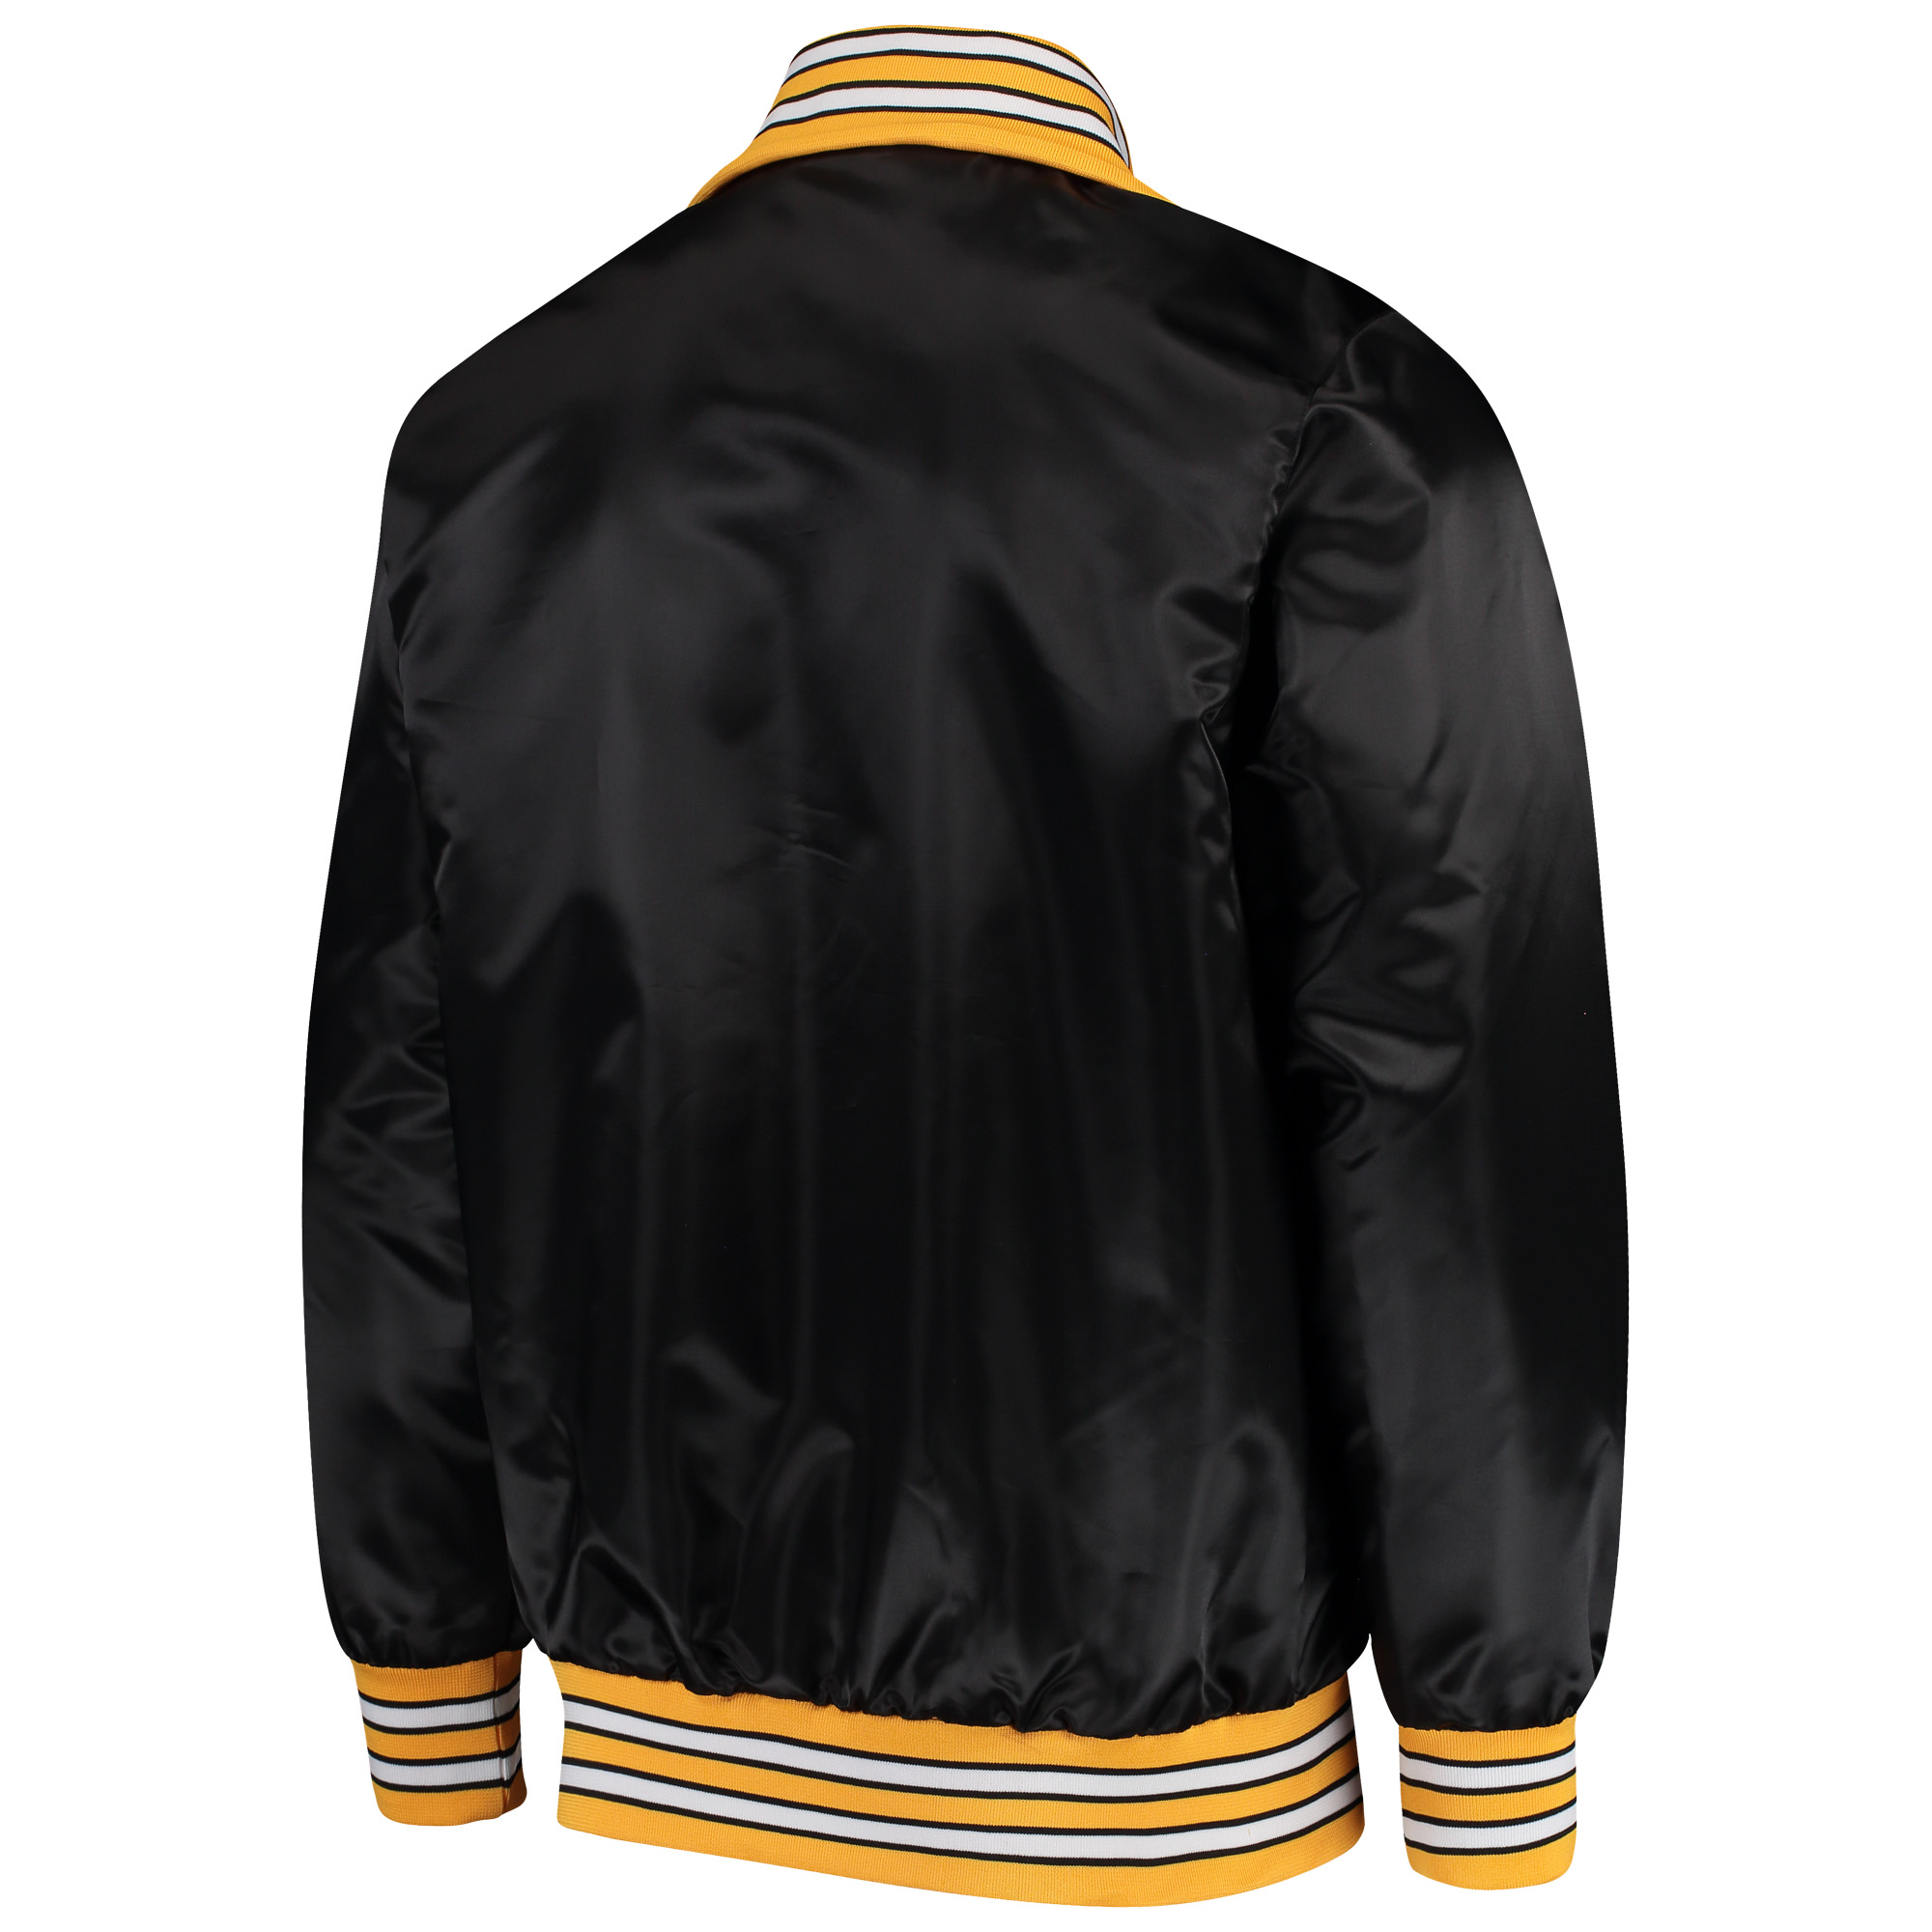 detailed look c88ce c8cbf Pittsburgh Steelers Starter Captain Satin Varsity Jacket - Black